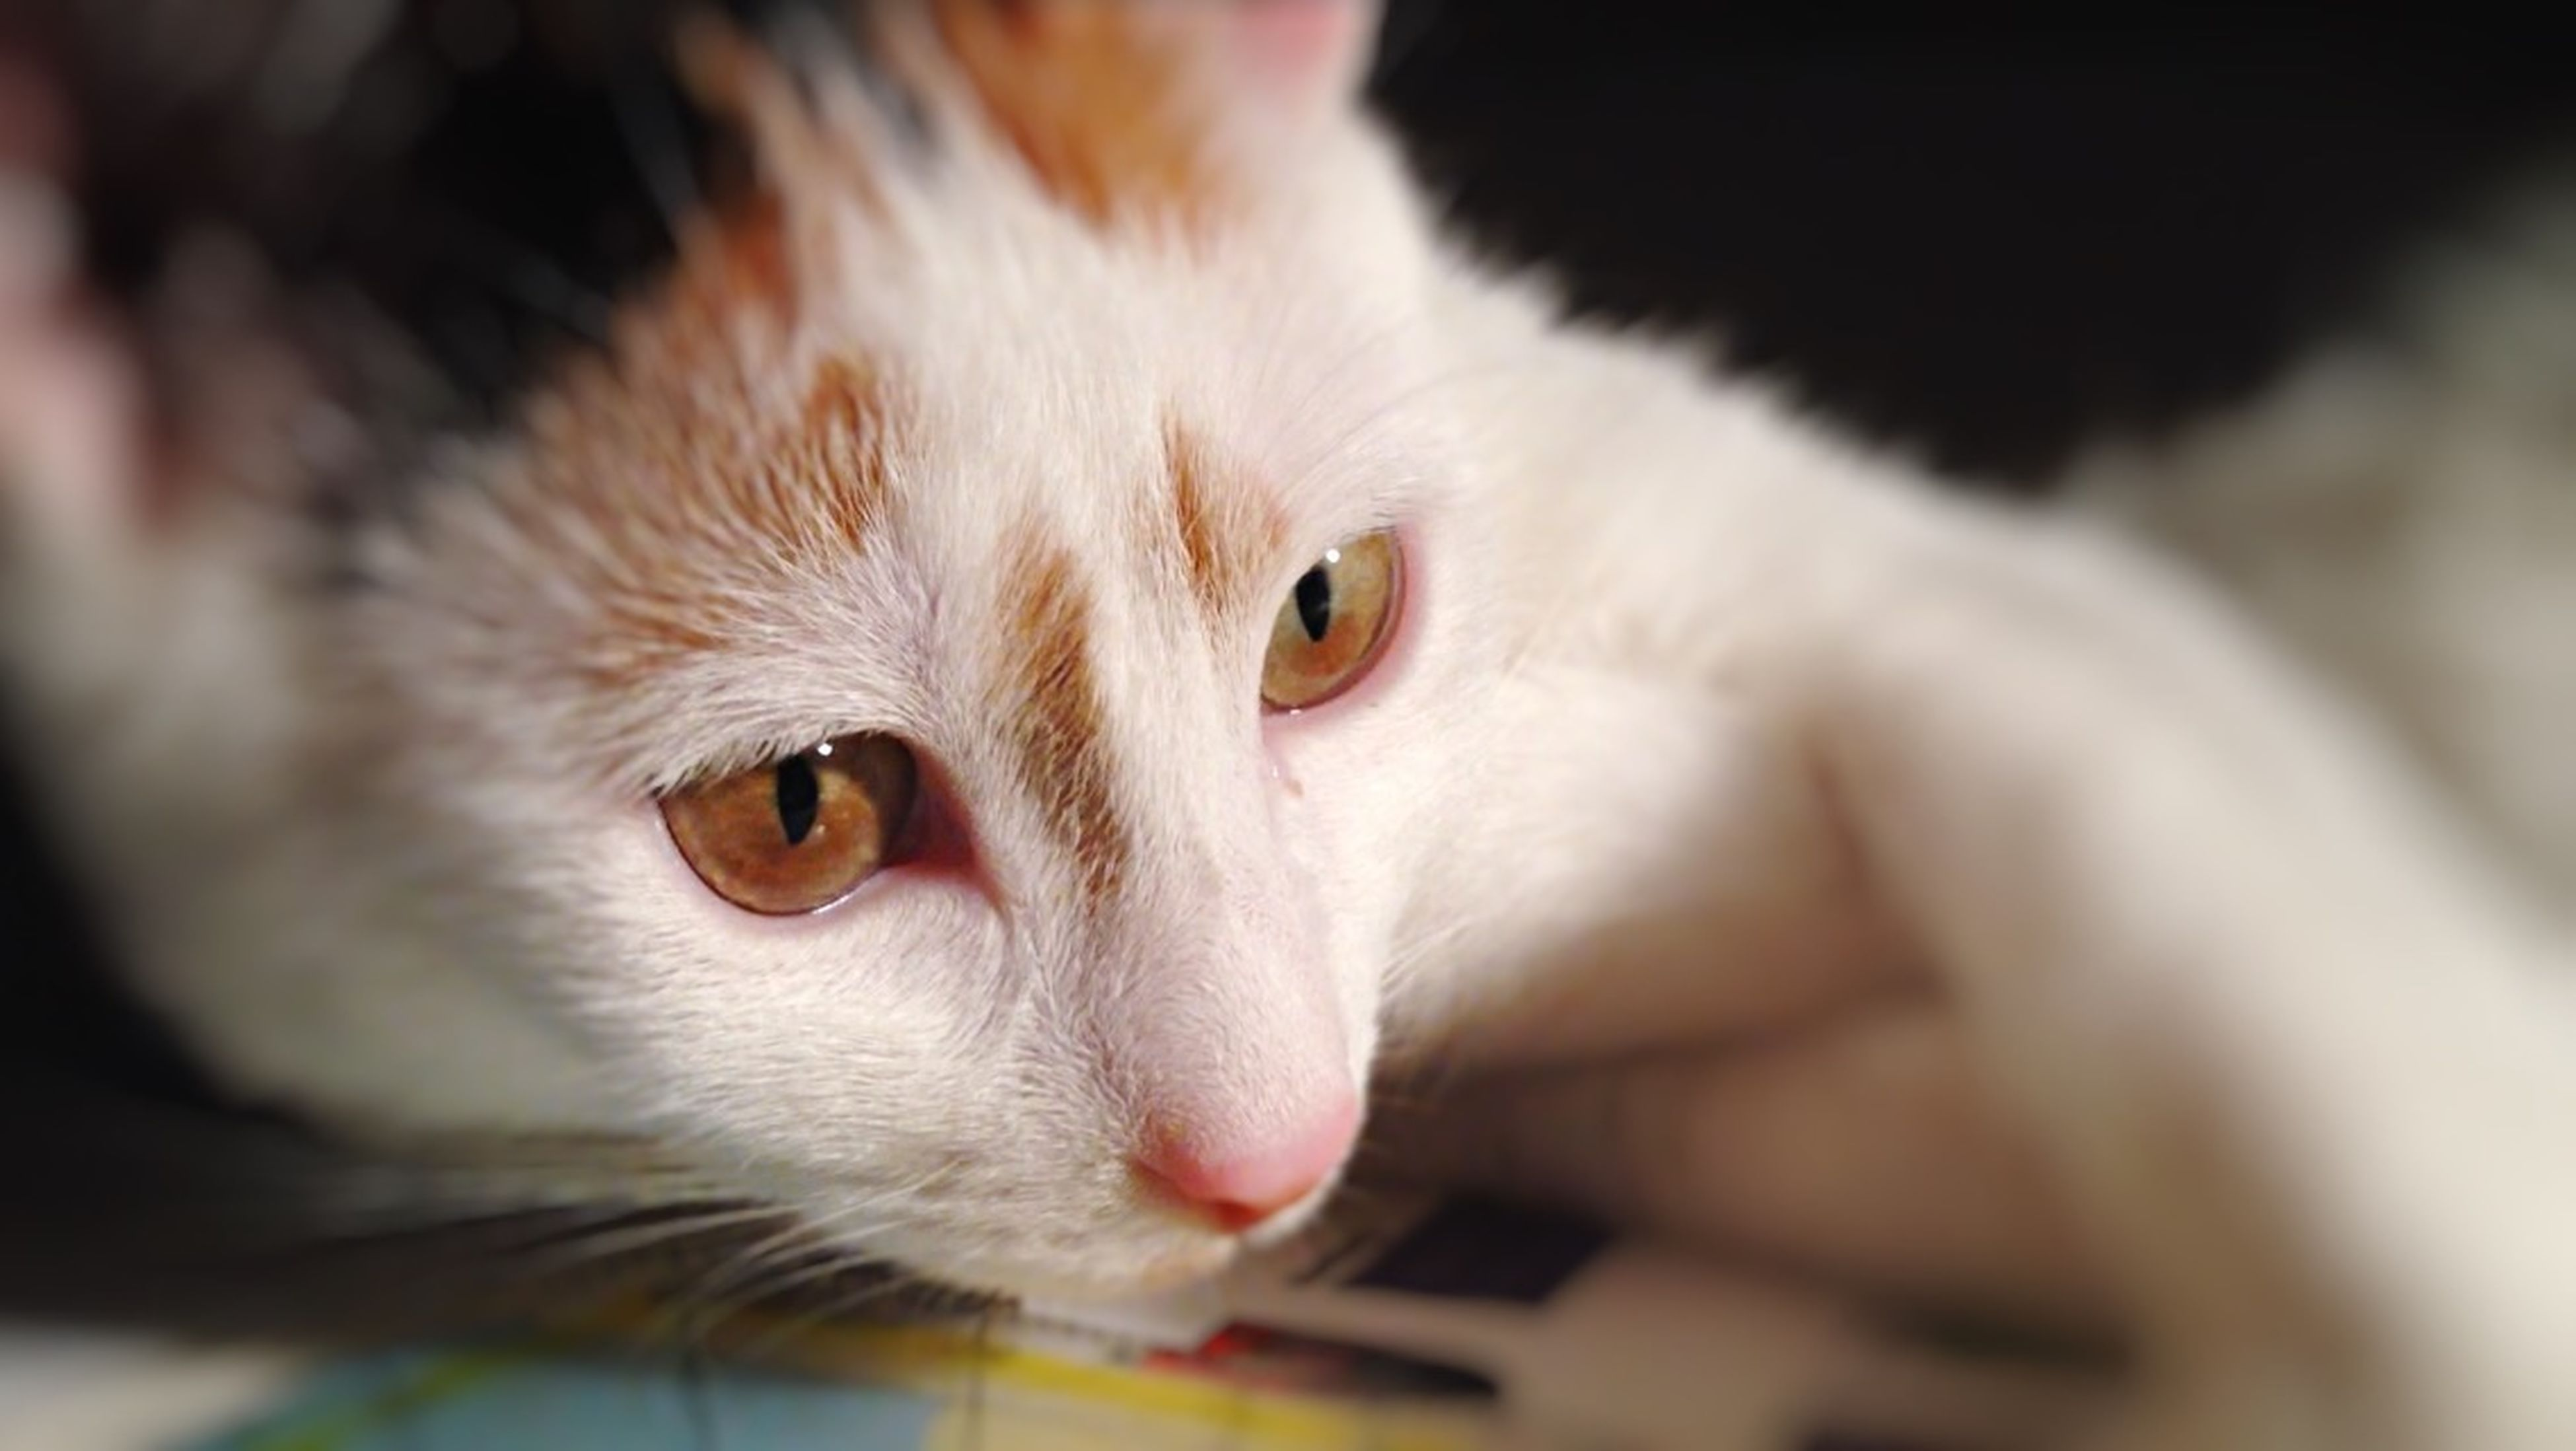 animal themes, pets, one animal, domestic cat, domestic animals, cat, mammal, portrait, feline, whisker, looking at camera, close-up, indoors, animal head, focus on foreground, alertness, animal eye, selective focus, staring